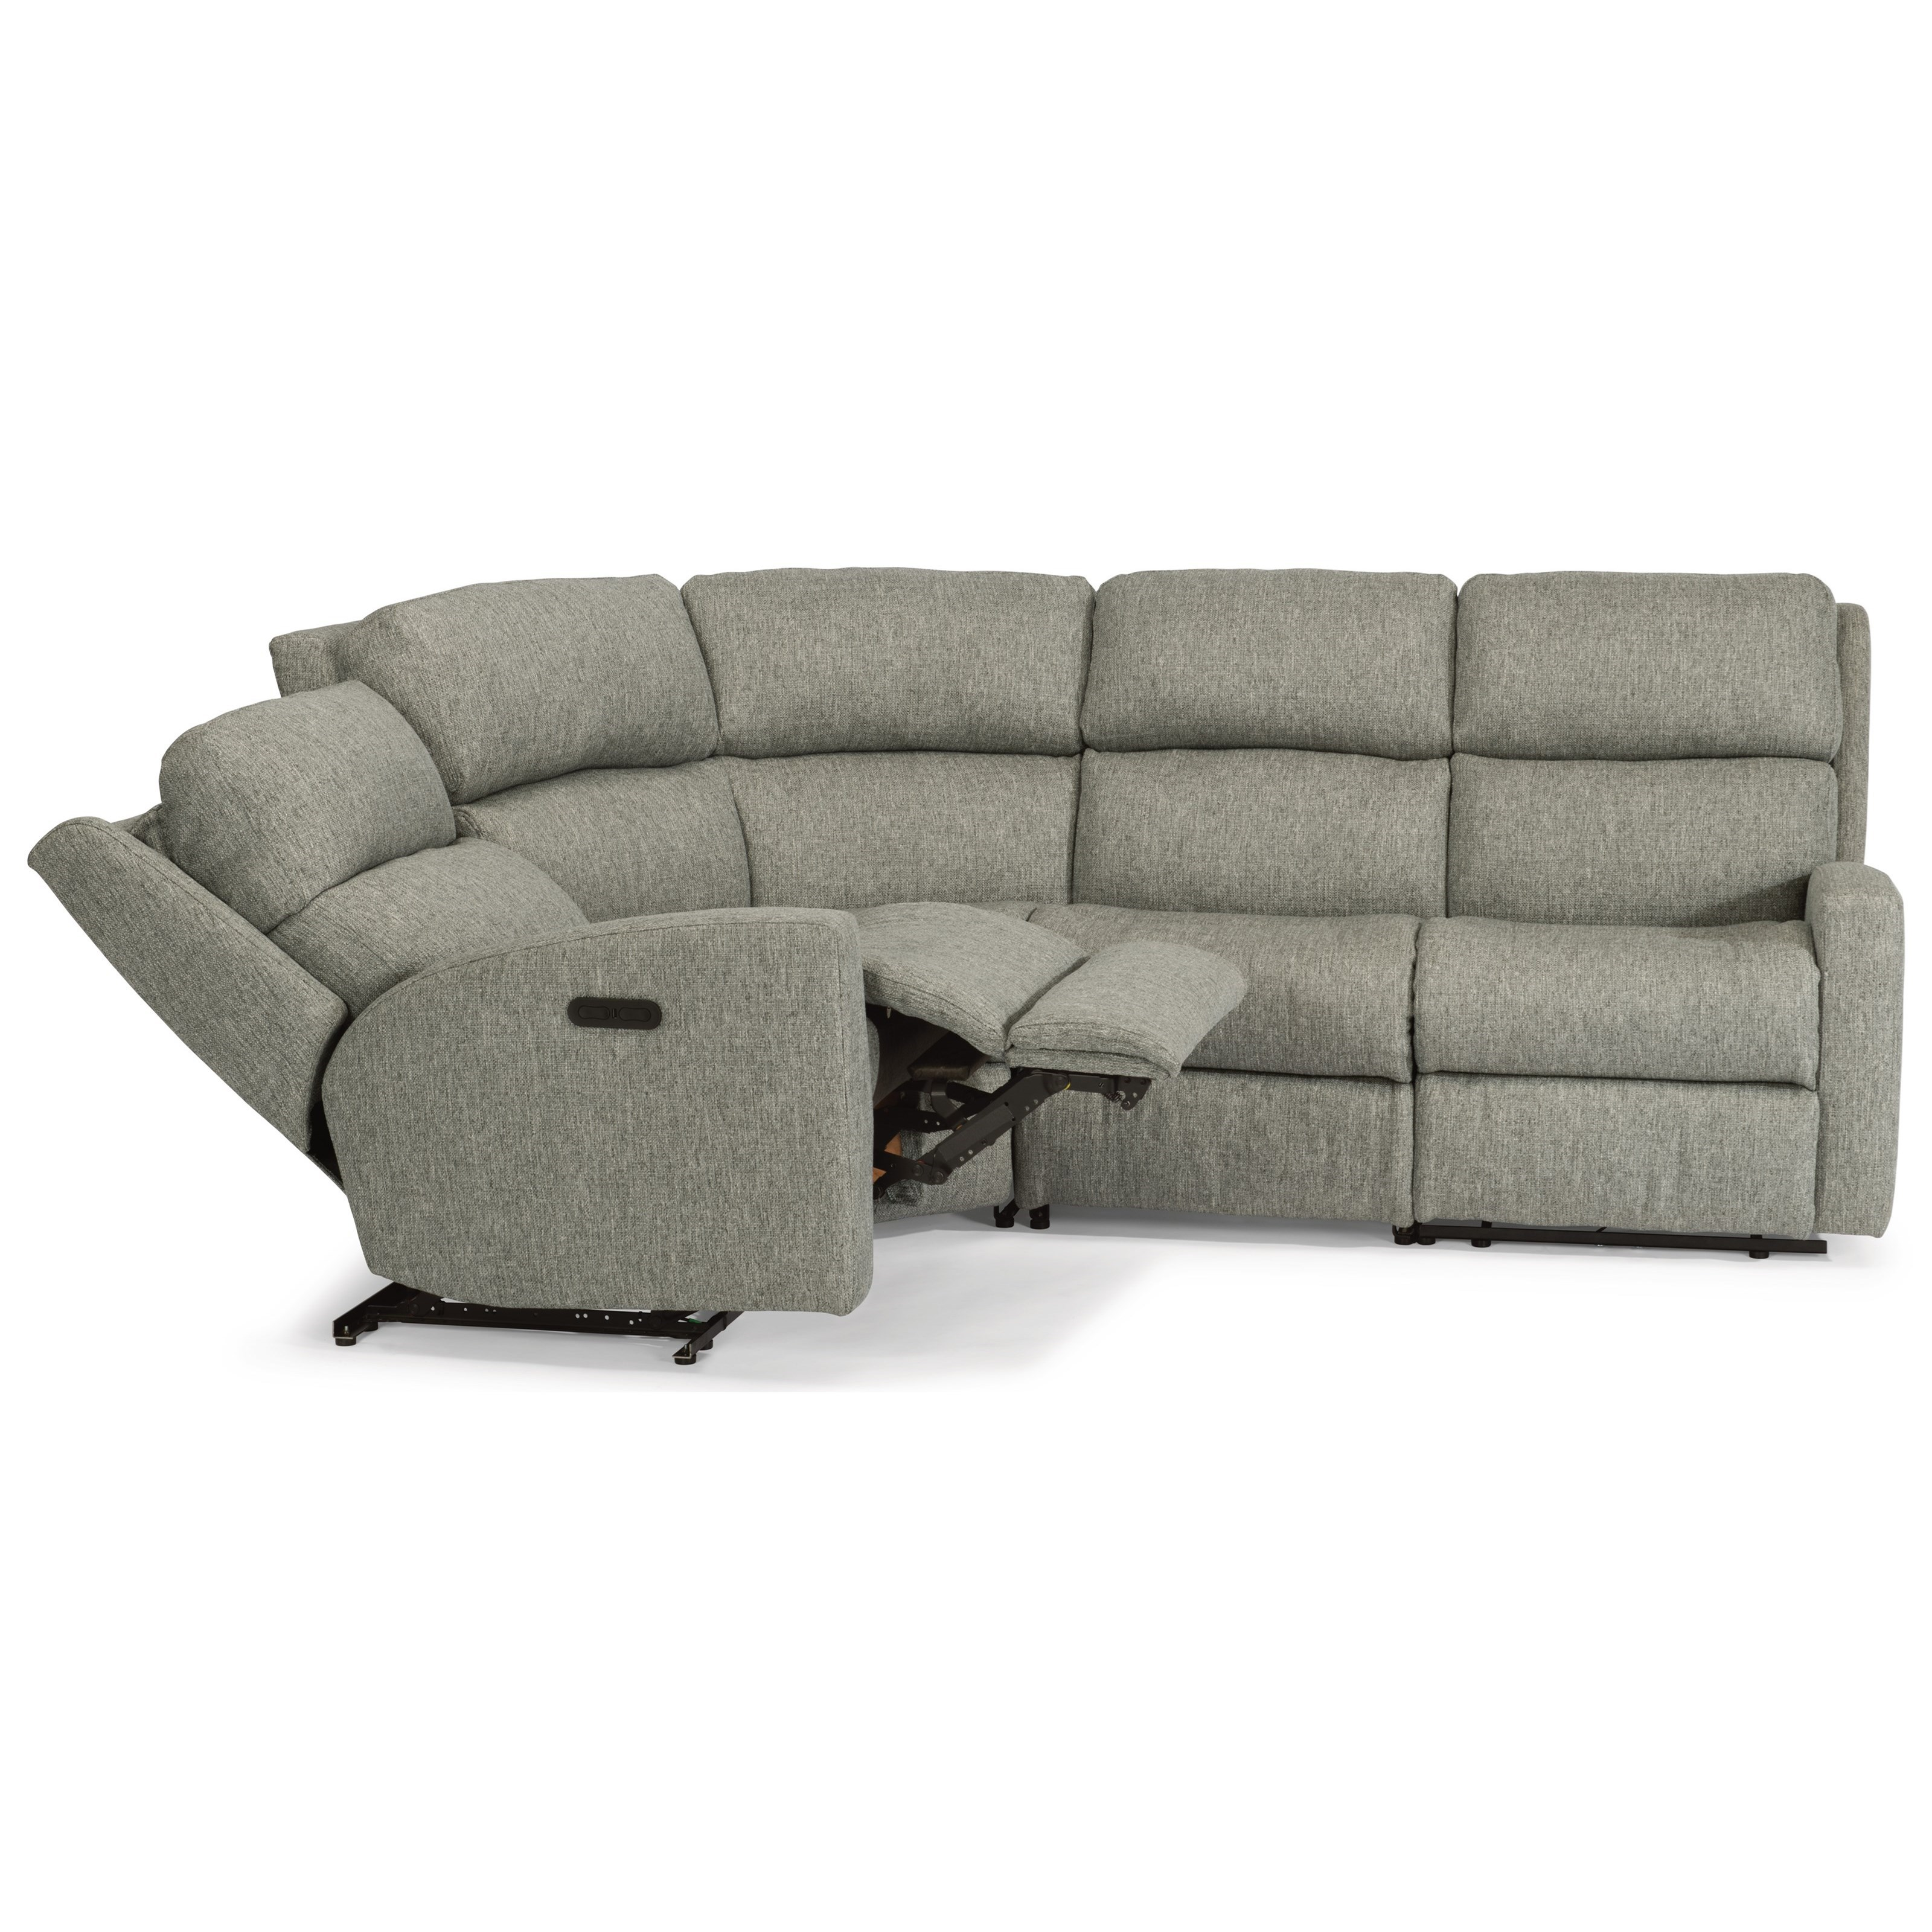 Catalina 4 Pc Reclining Sectional w/ Pwr Headrests by Flexsteel at Hudson's Furniture